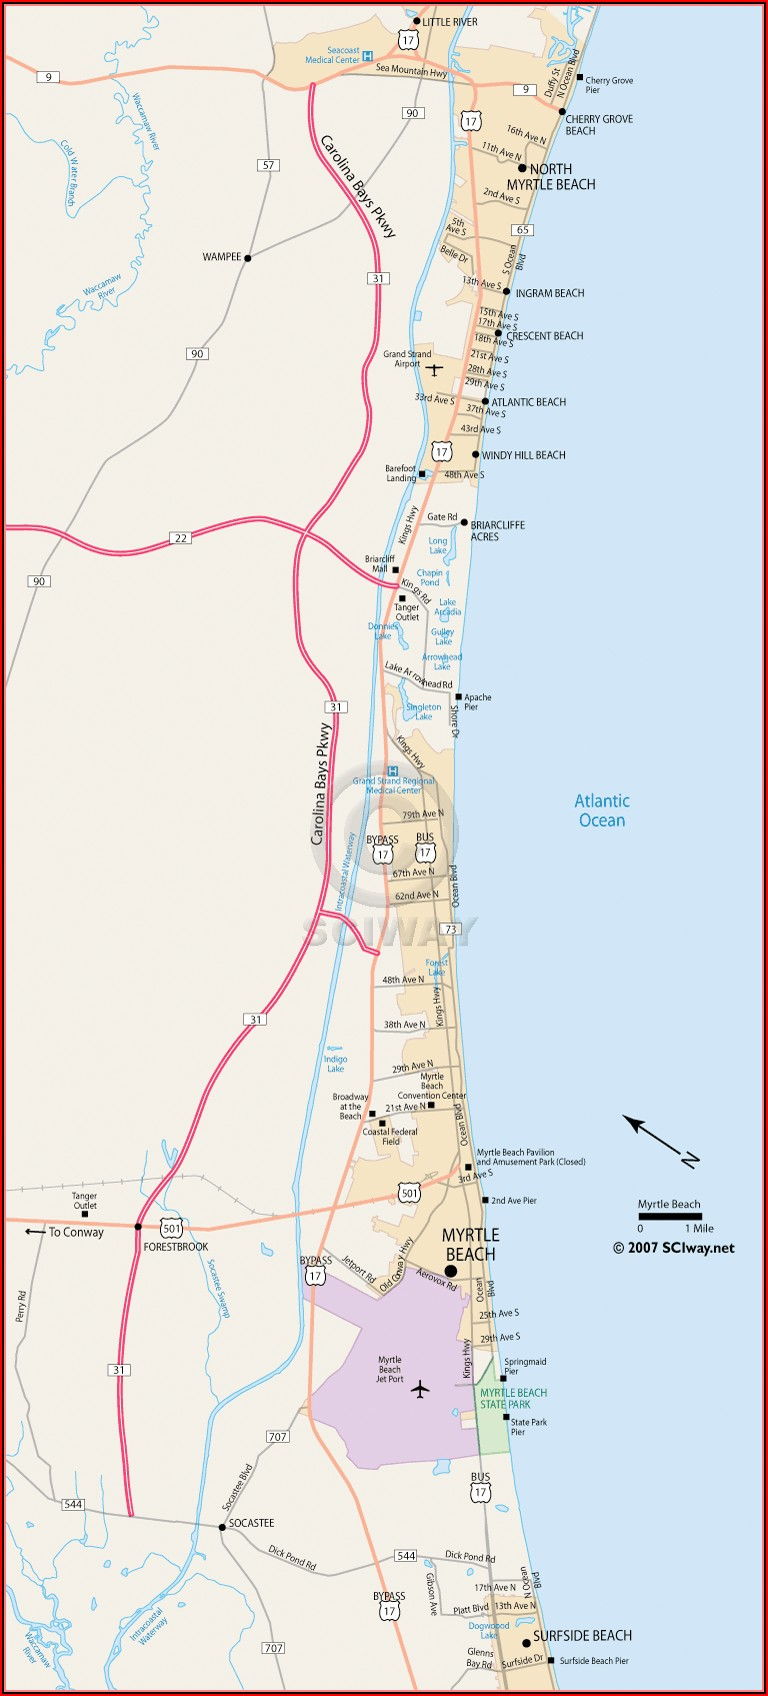 North Myrtle Beach Hotel Map